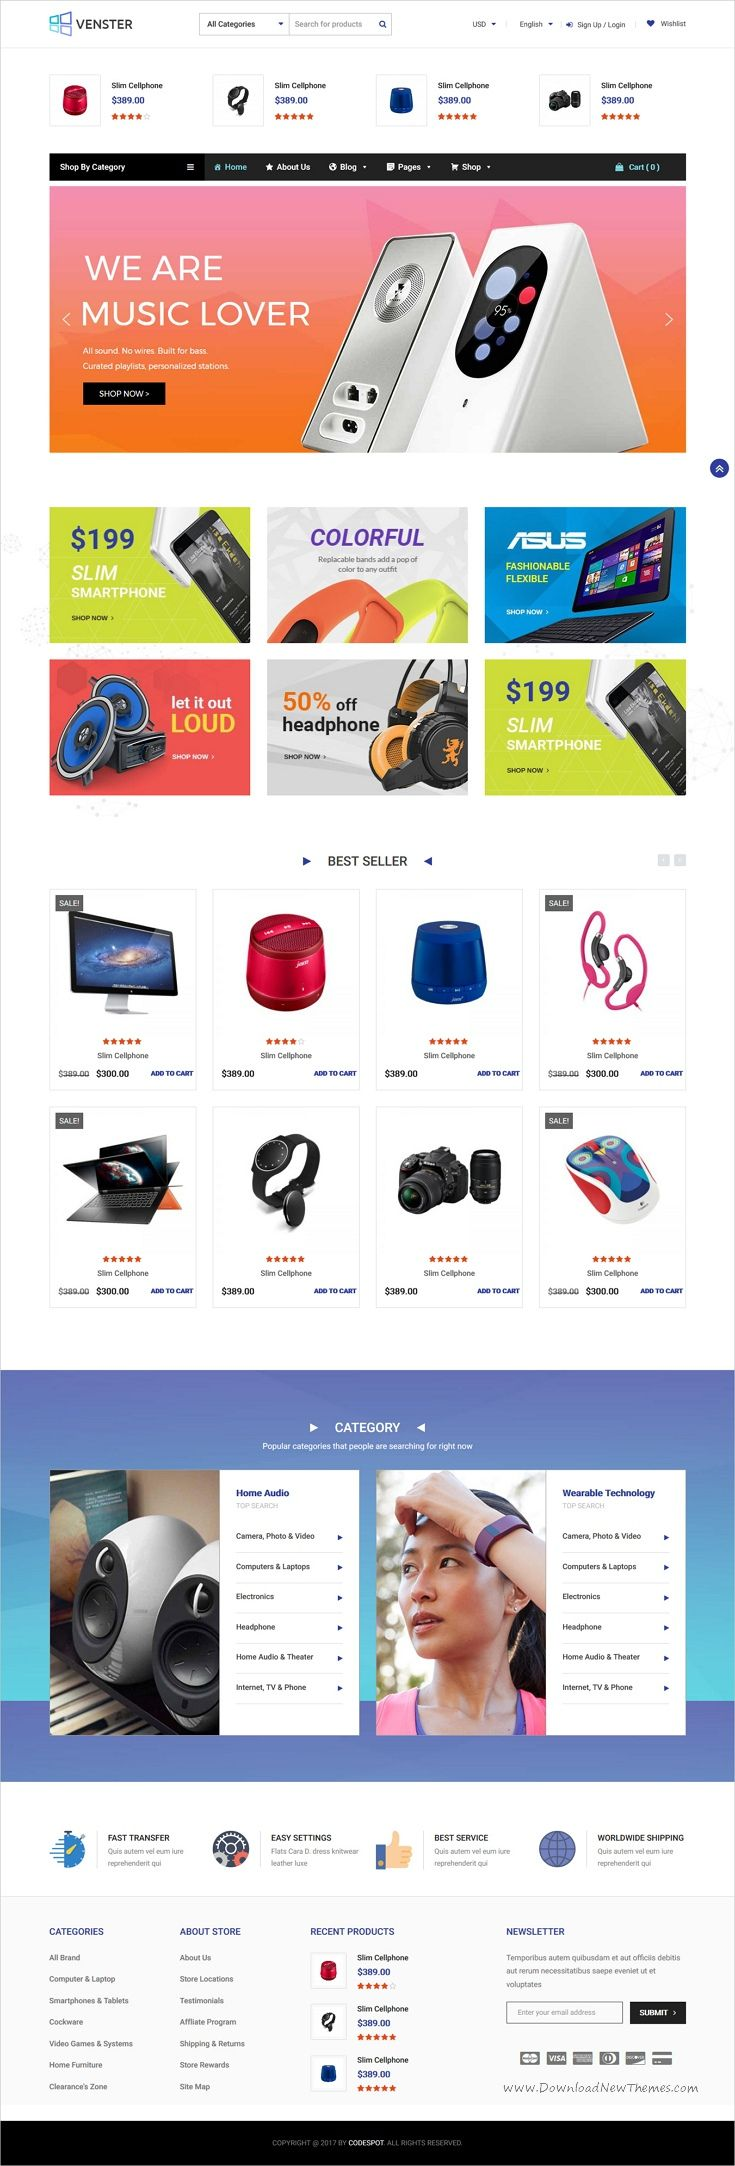 Venster is professional and modern design responsive #WooCommerce #WordPress theme for stunning #electronics shop eCommerce website download now➩ https://themeforest.net/item/venster-computer-woocommerce-wordpress-theme/19781588?ref=Datasata